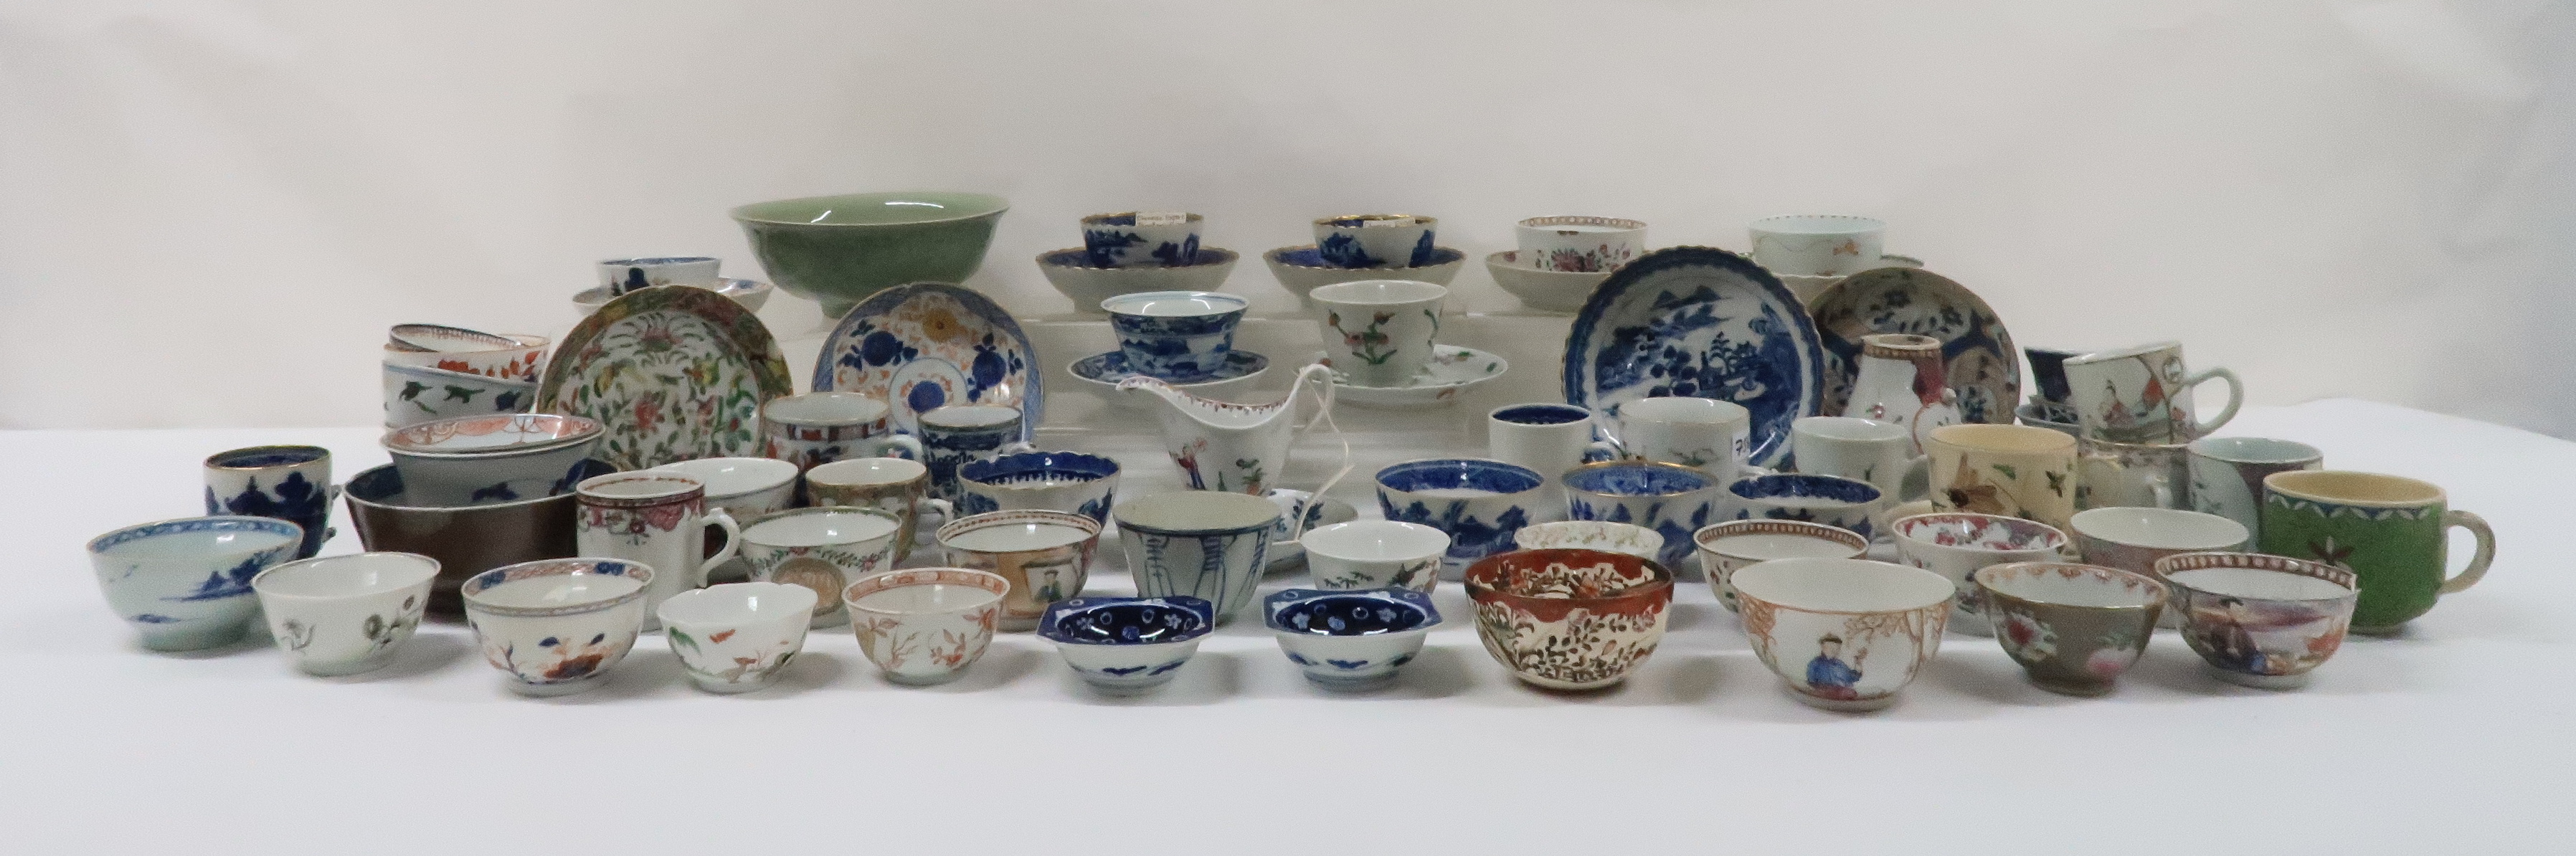 A COLLECTION OF CHINESE EXPORT TEAWARES and others including famille rose, Chien Lung, blue and